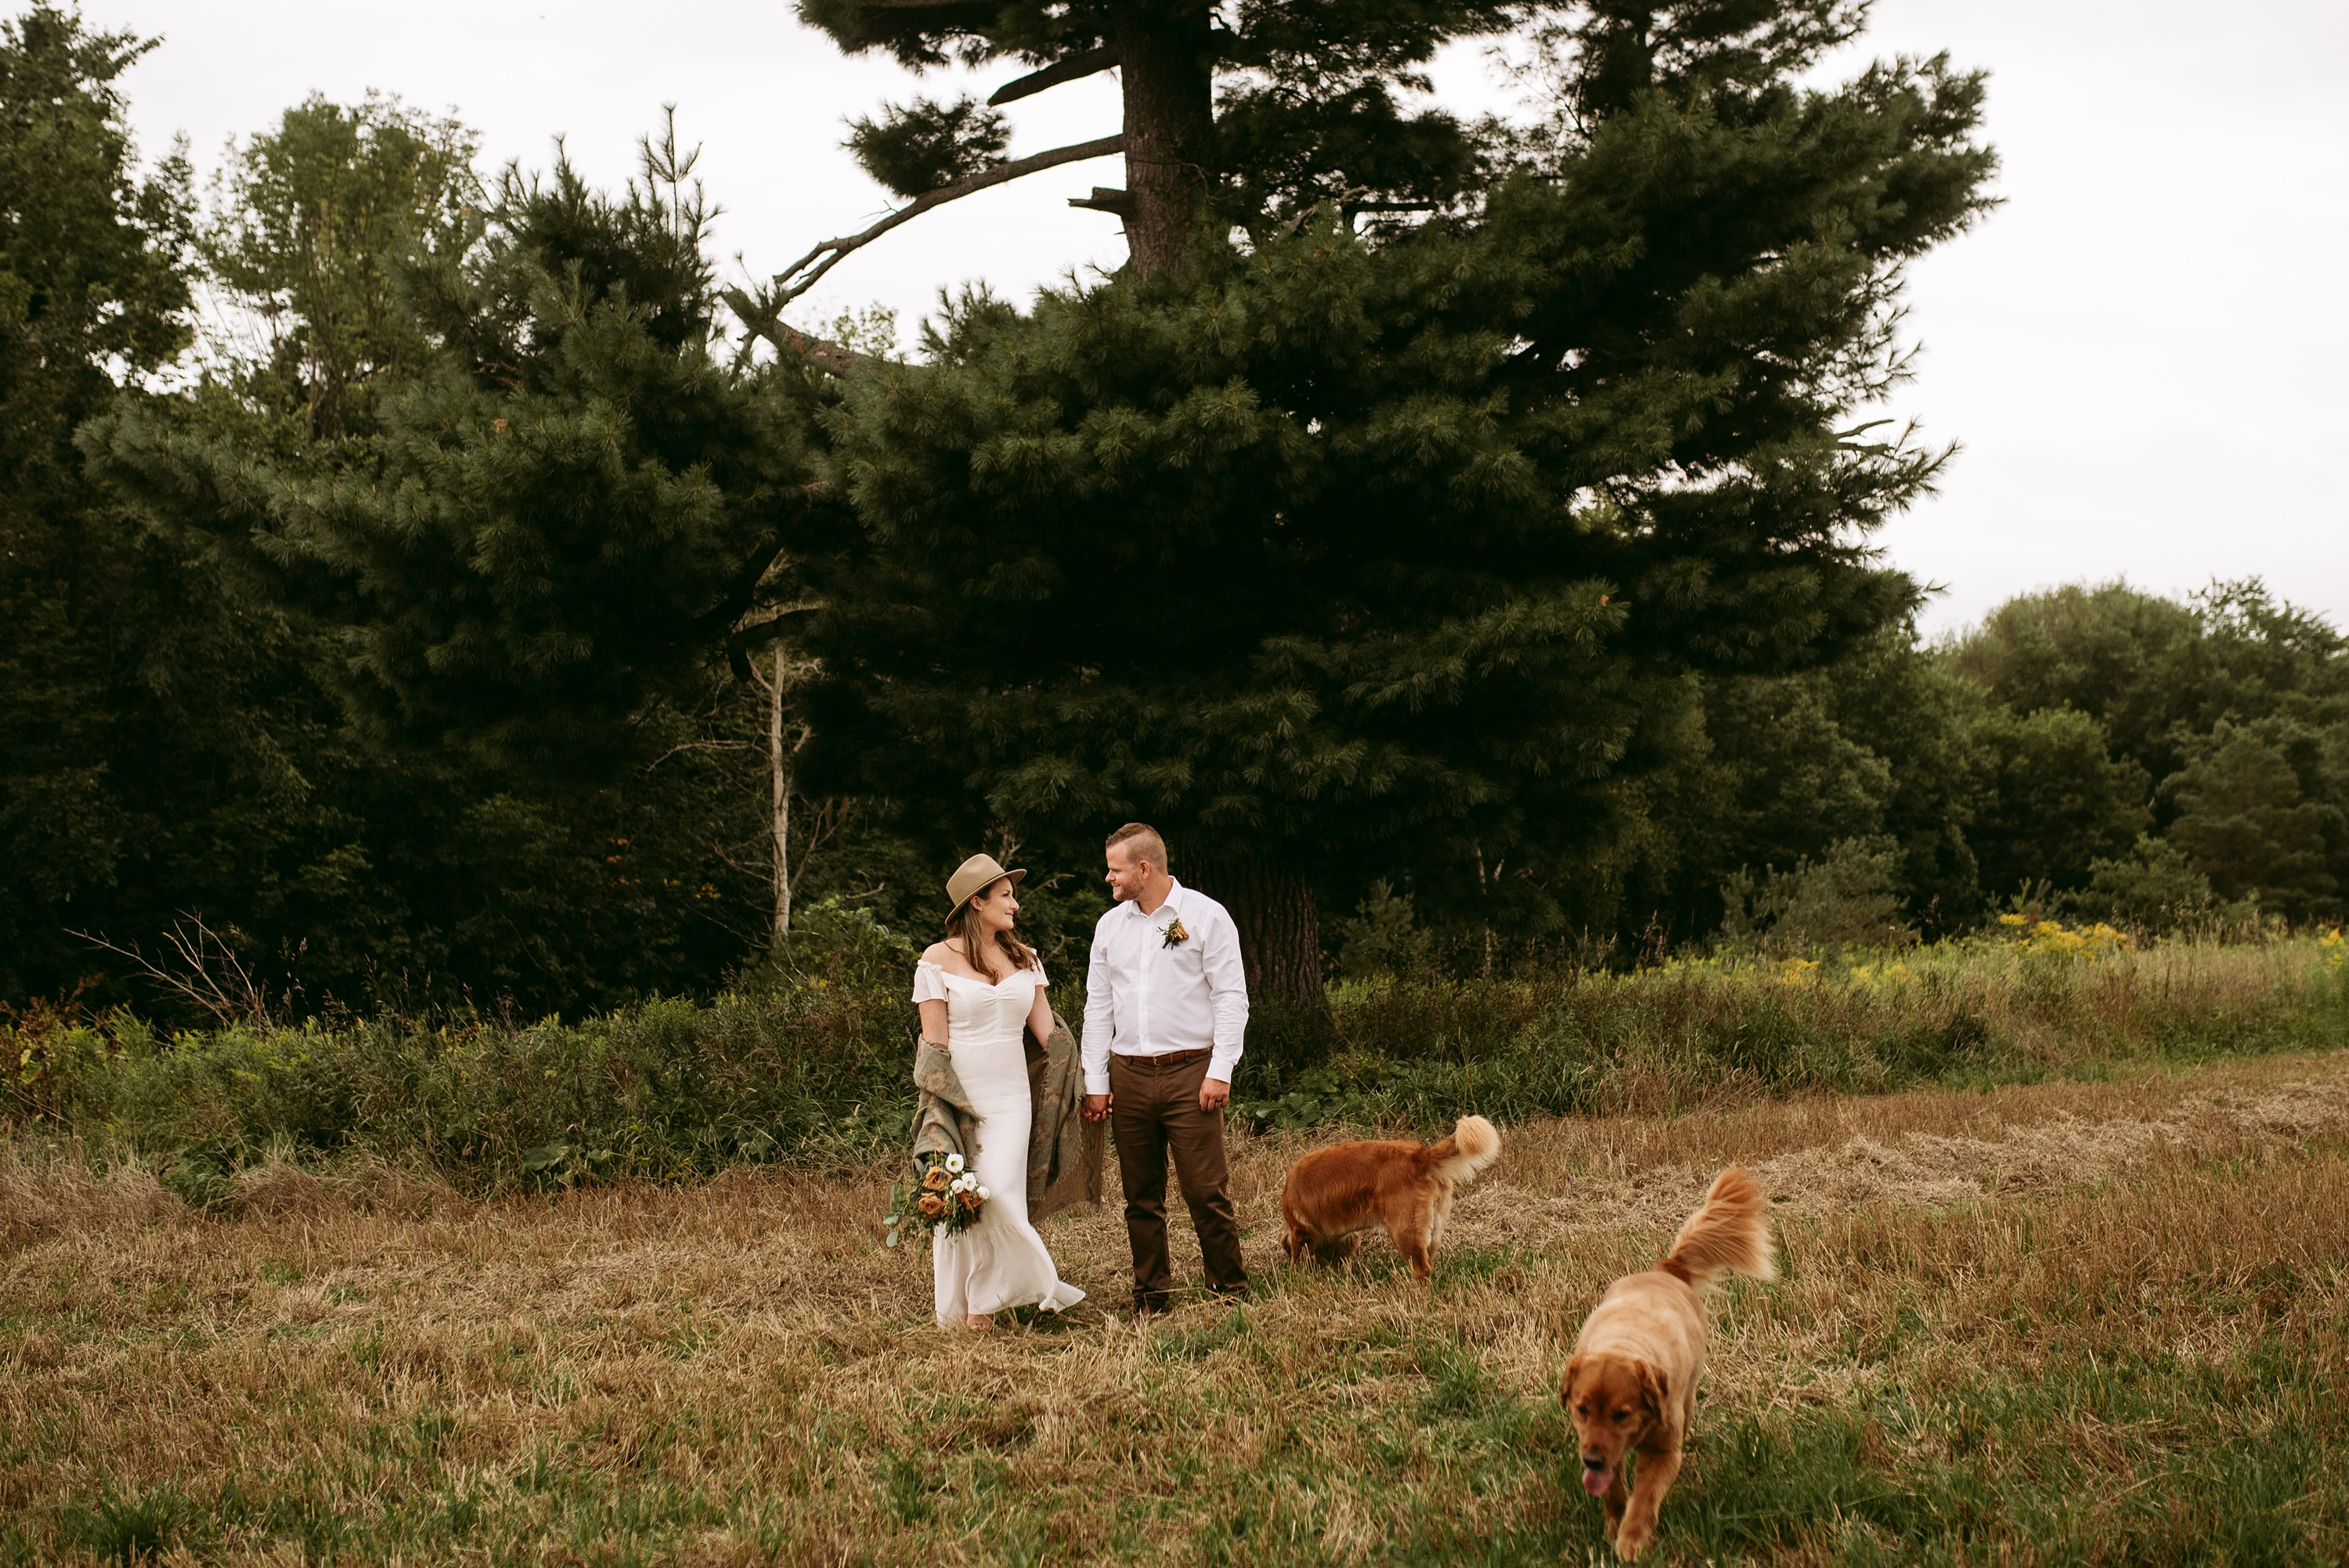 wedding with kids,wedding with dogs